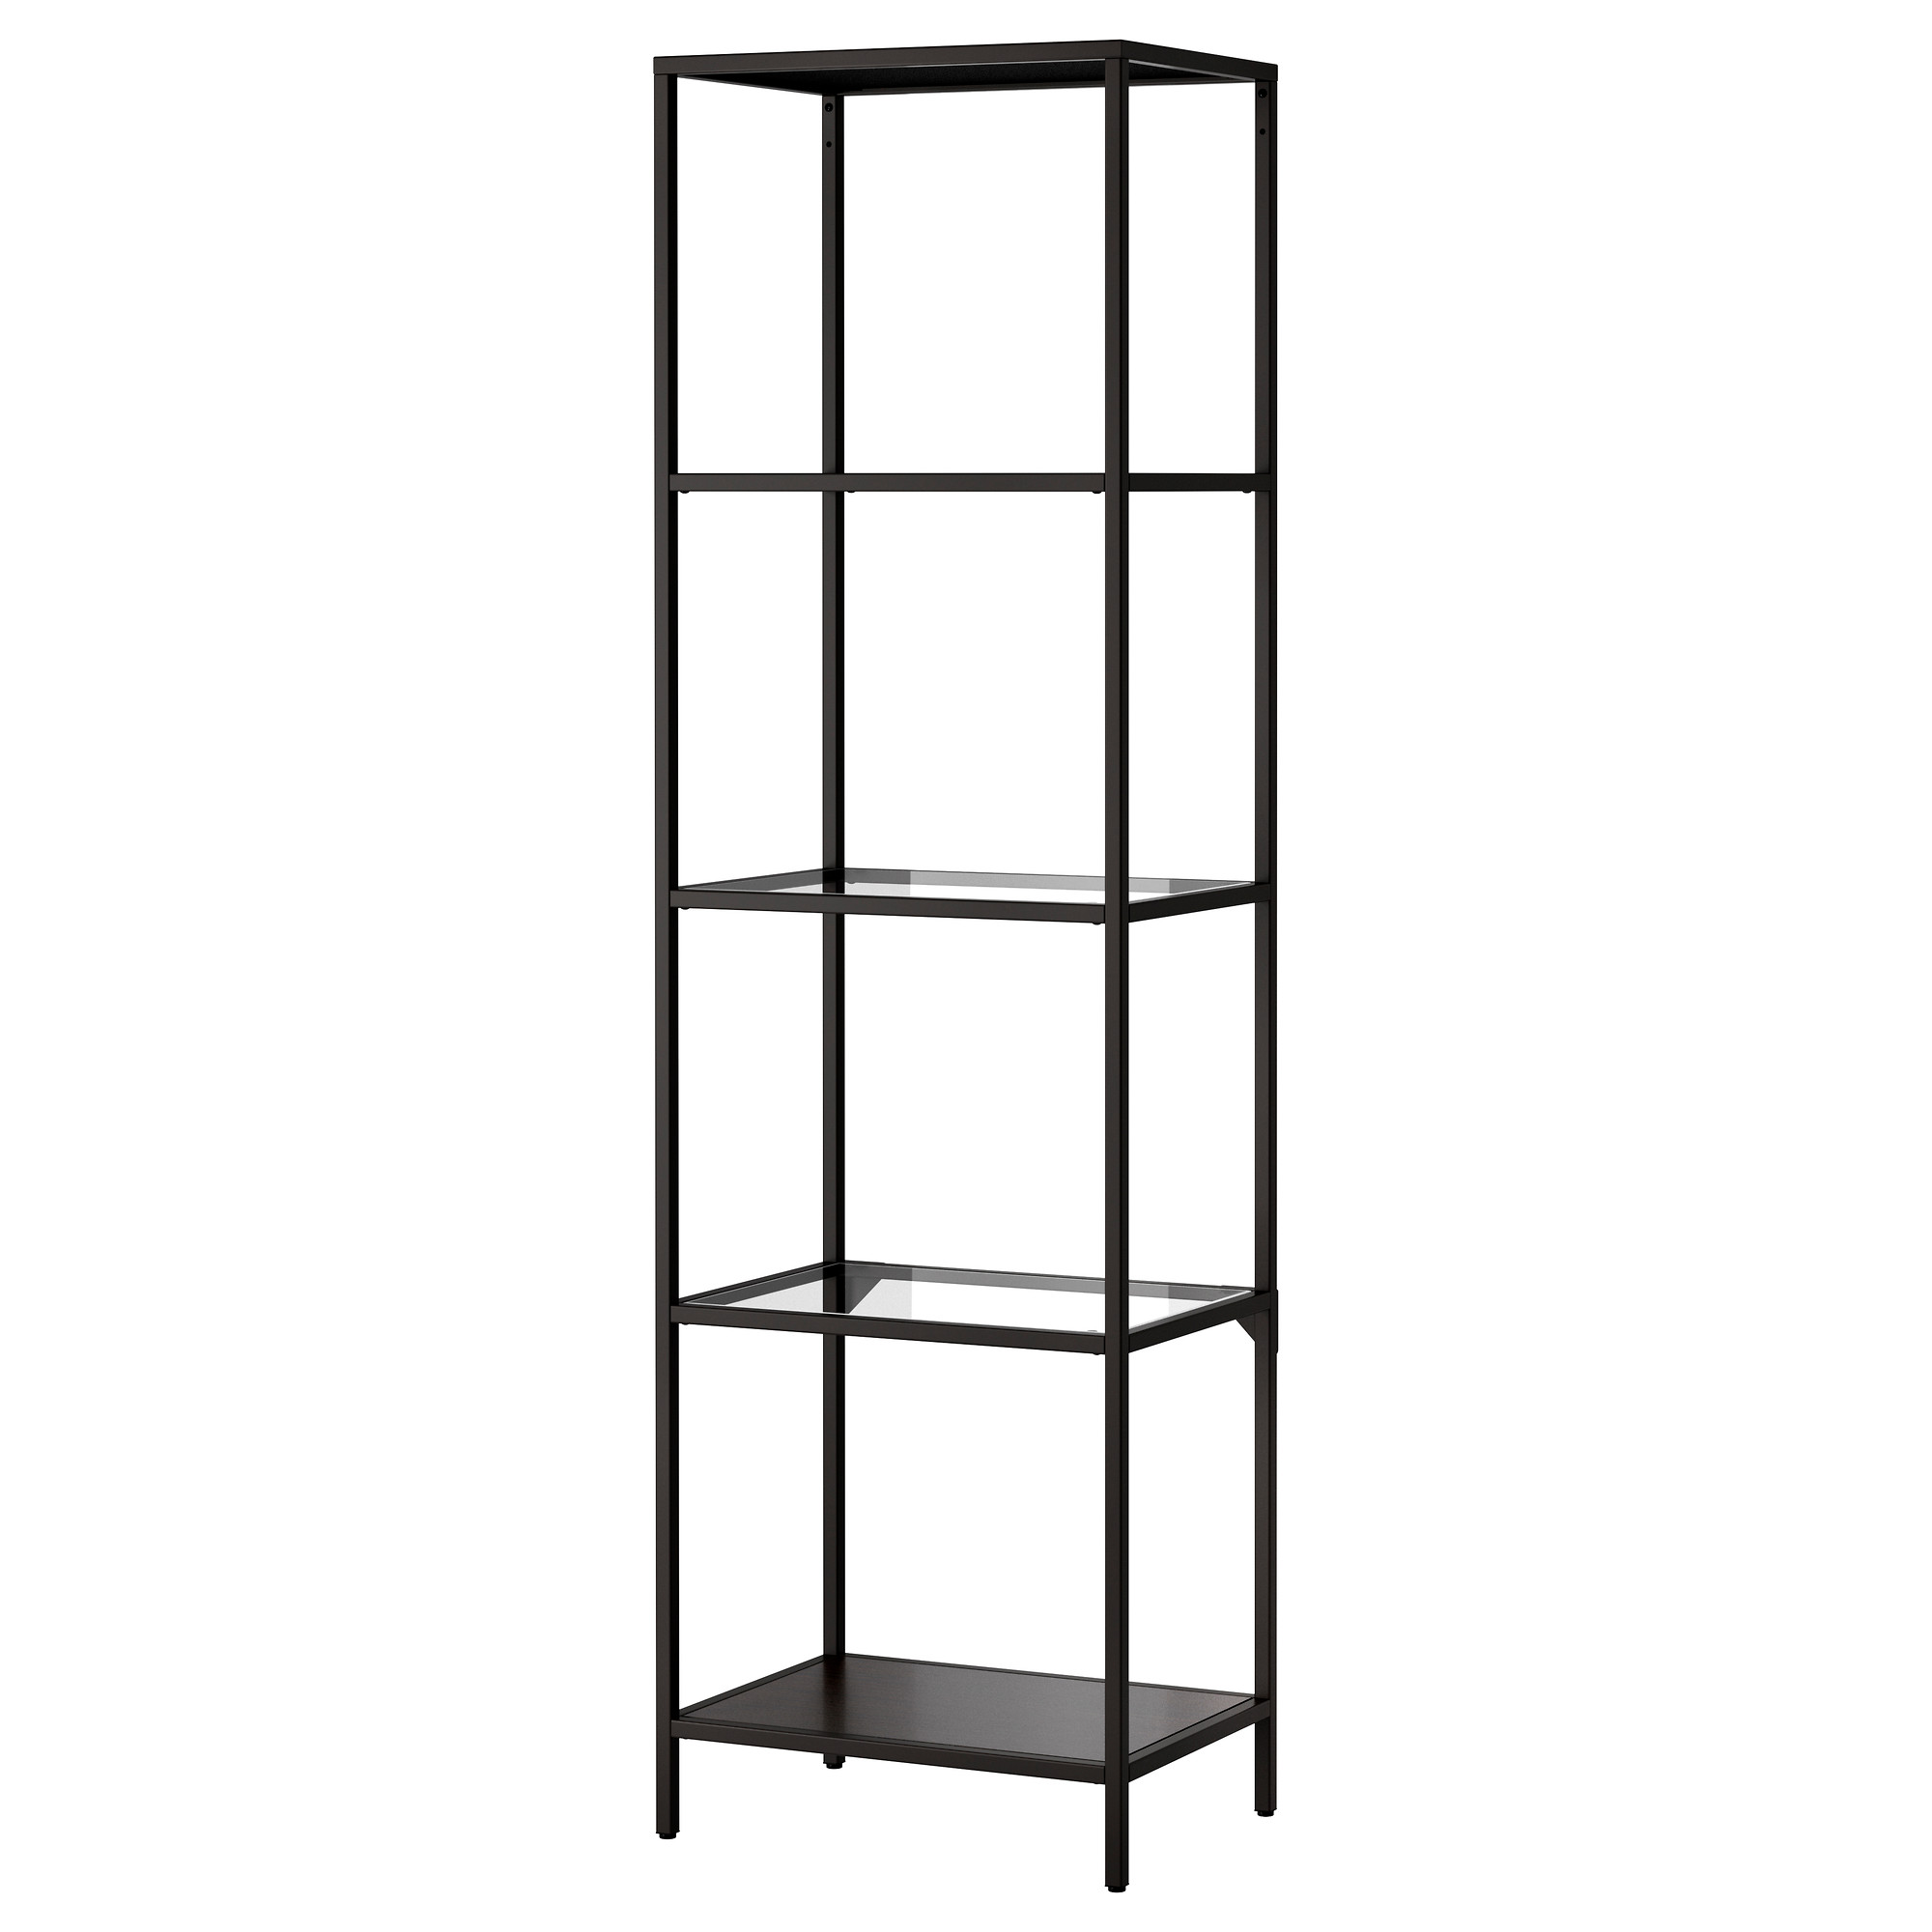 Images of VITTSJÖ Shelf unit - black-brown/glass - IKEA glass shelving unit